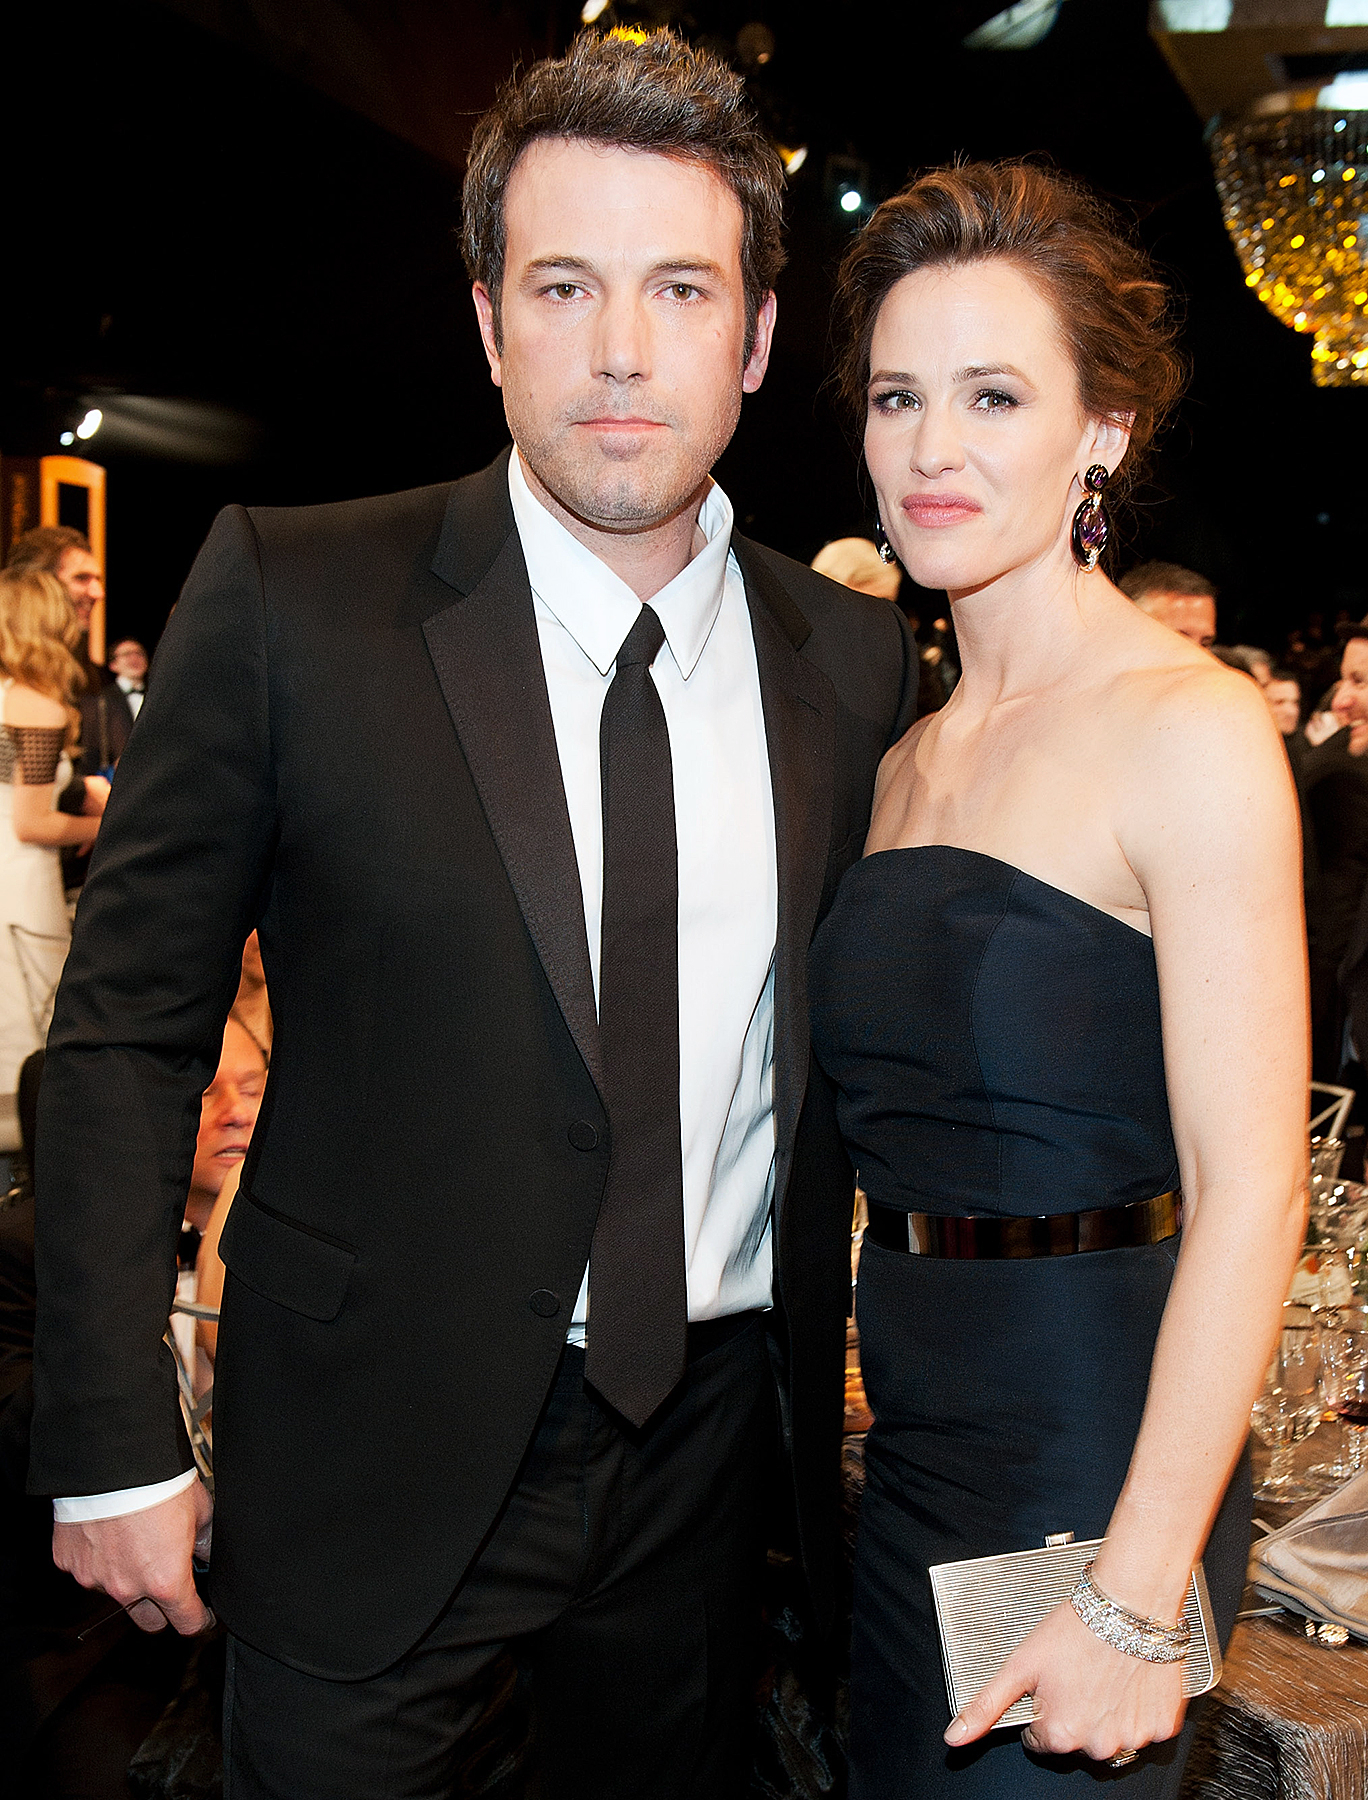 Ben Affleck Was Seeing Lindsay Shookus During Jen Garner ...